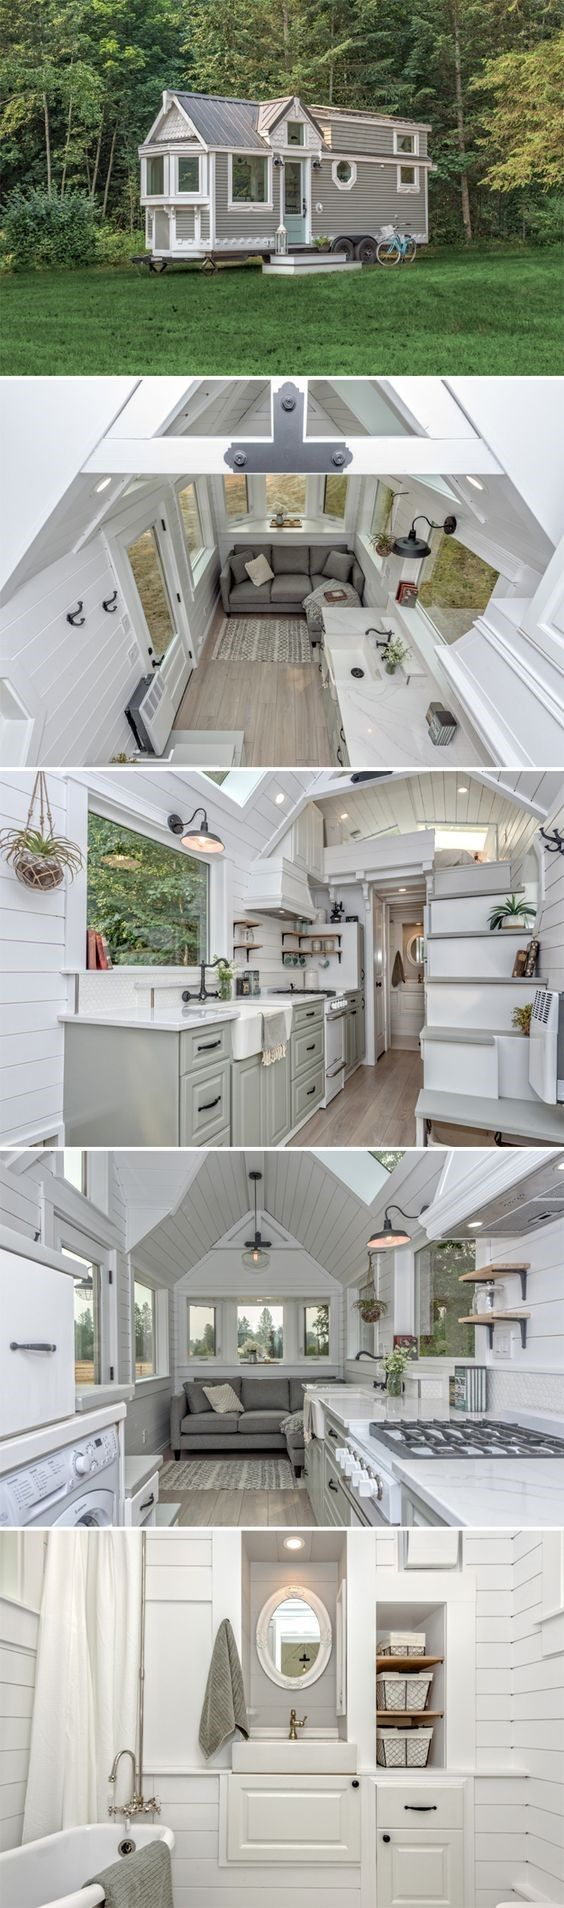 Shed plans the heritage is the debut tiny house built by oliver stankiewicz and cera bollo at for Mini maison usinee